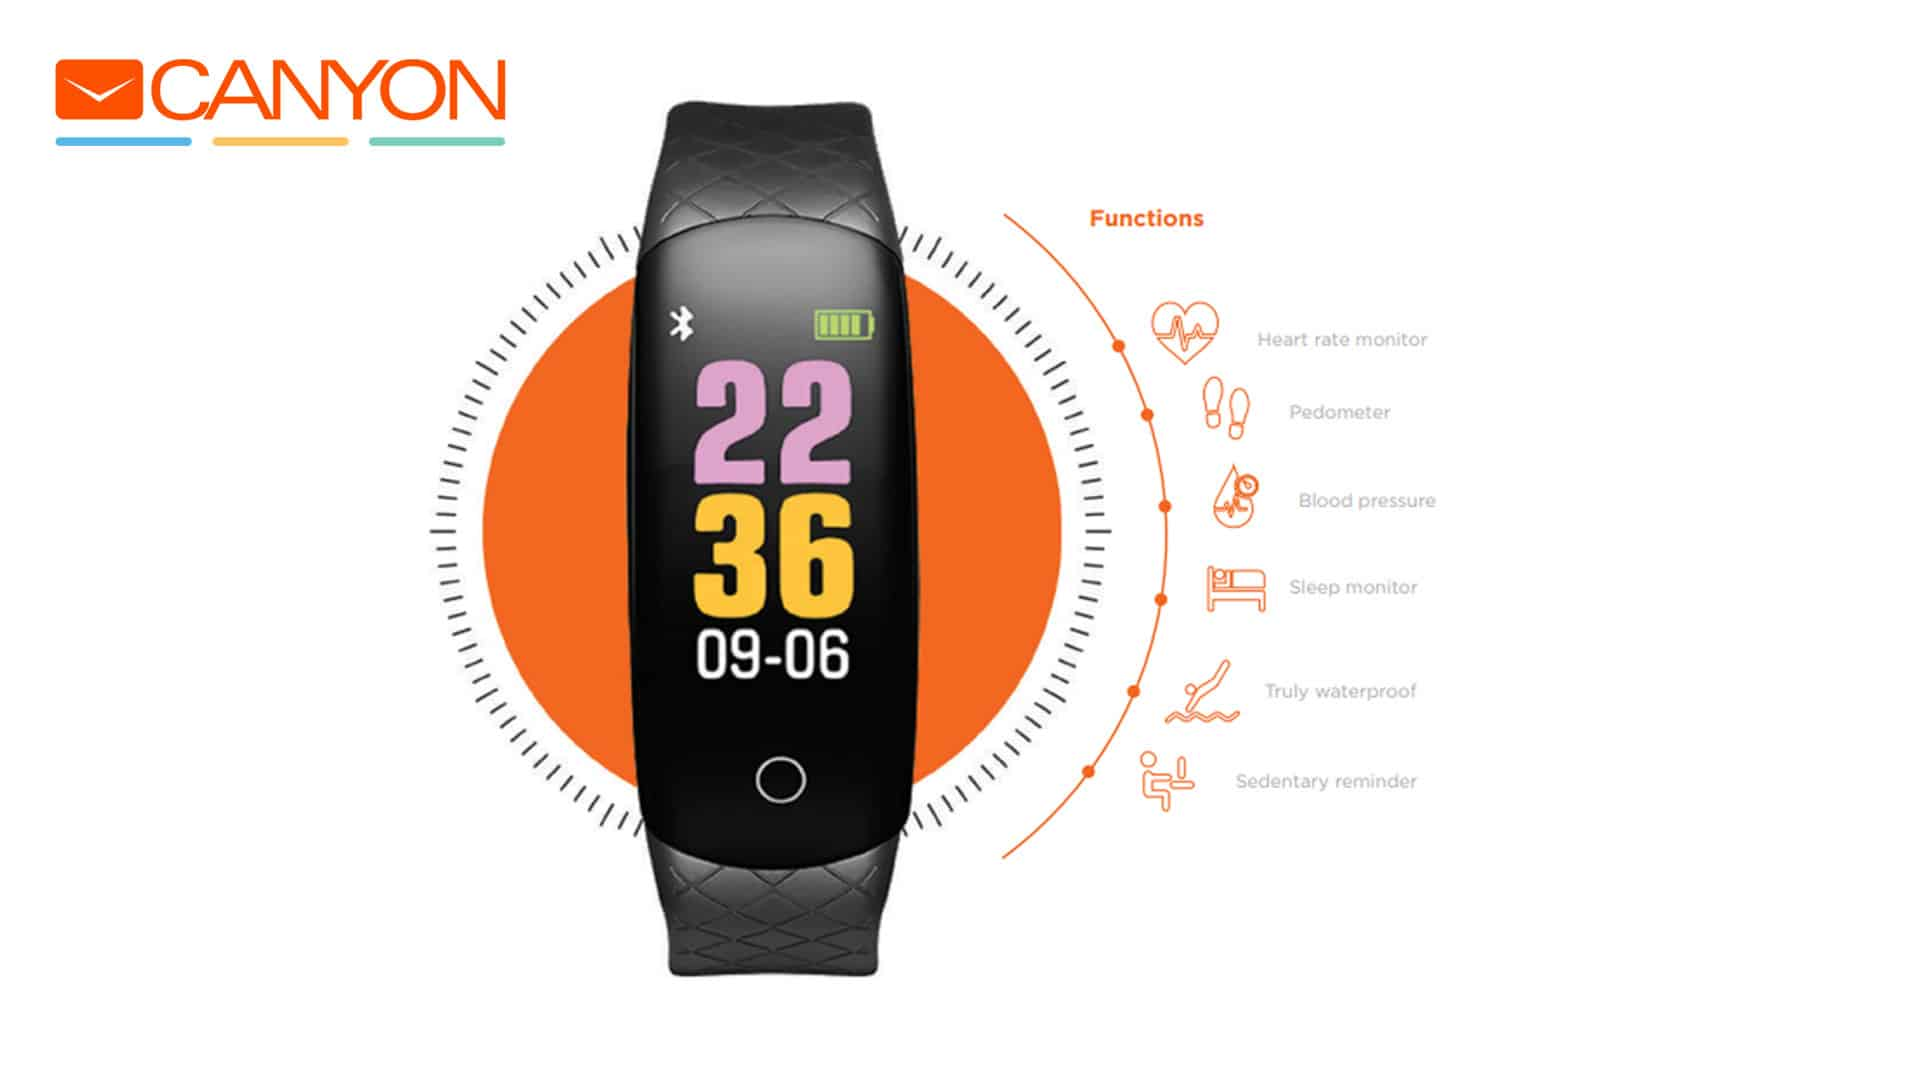 Canyon Basic Fitness Band With Colourful Display